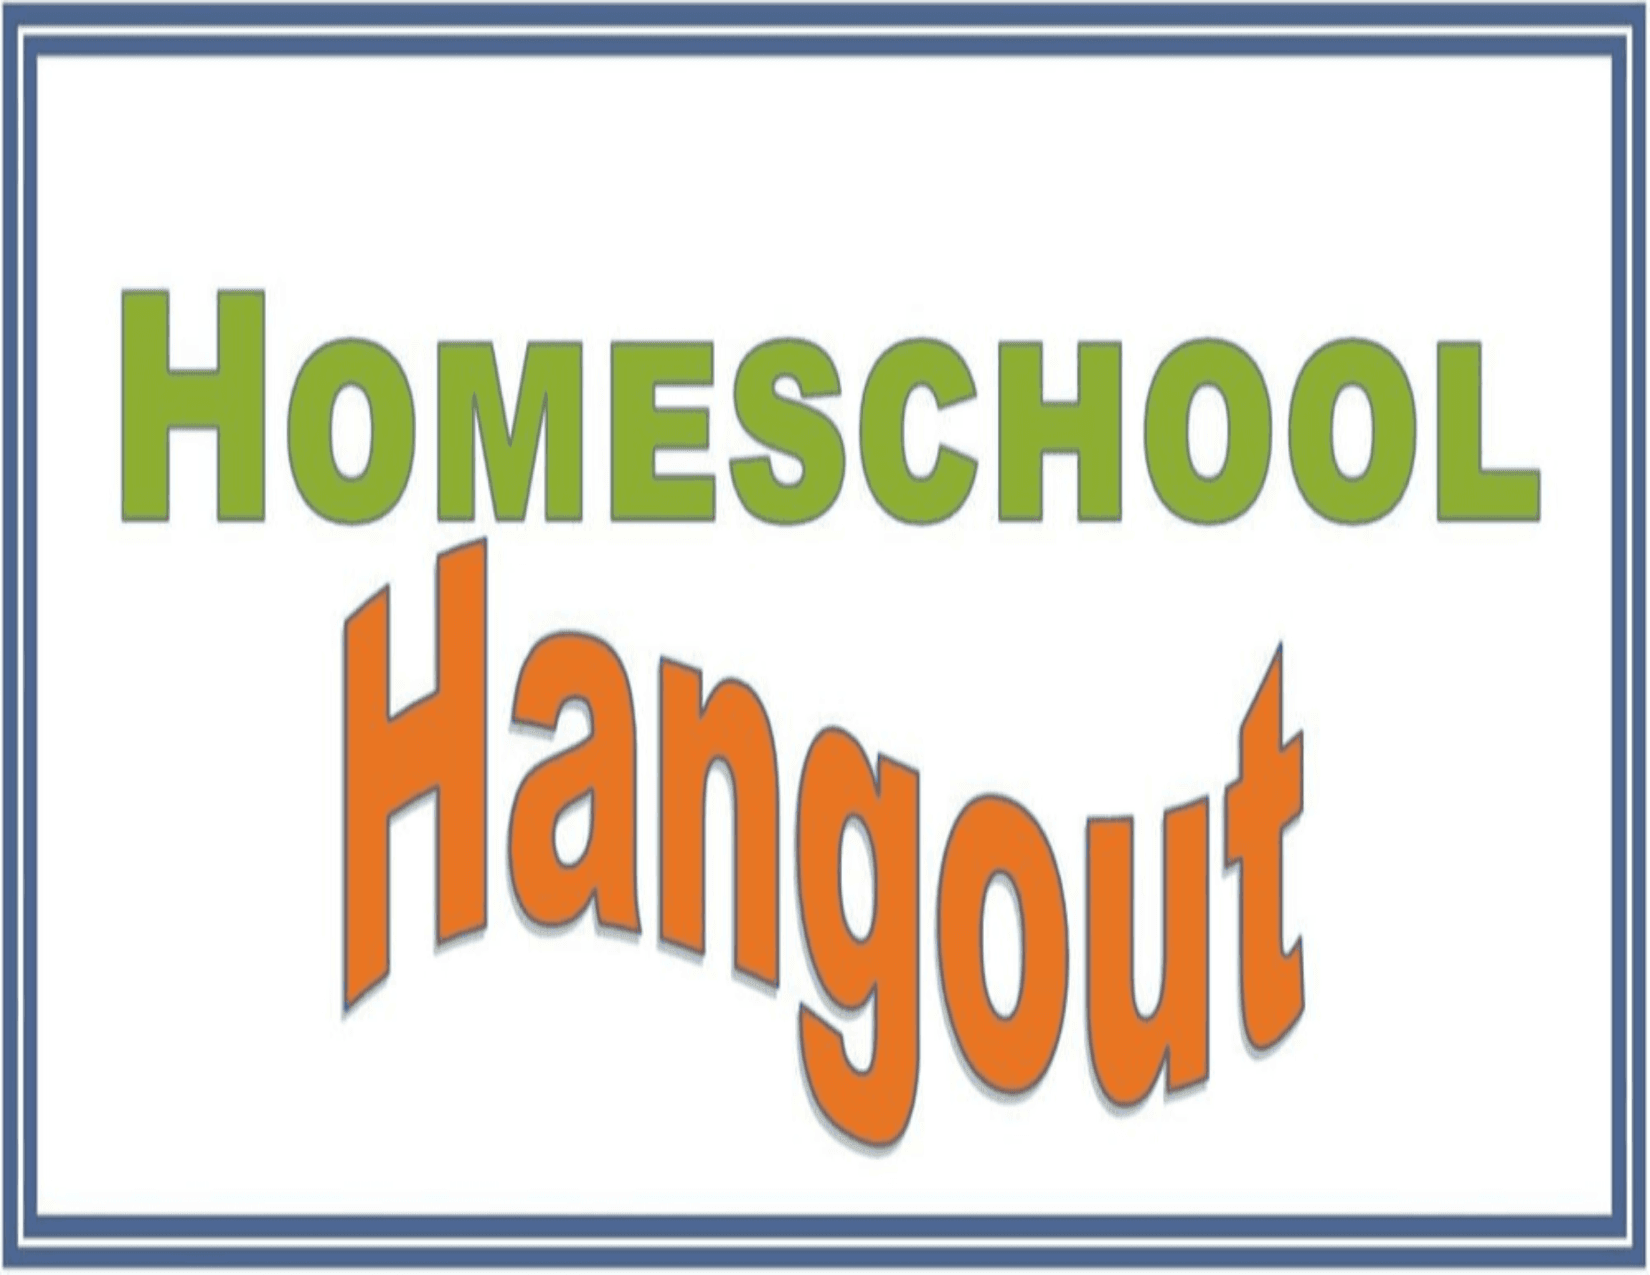 Homeschool Hangout